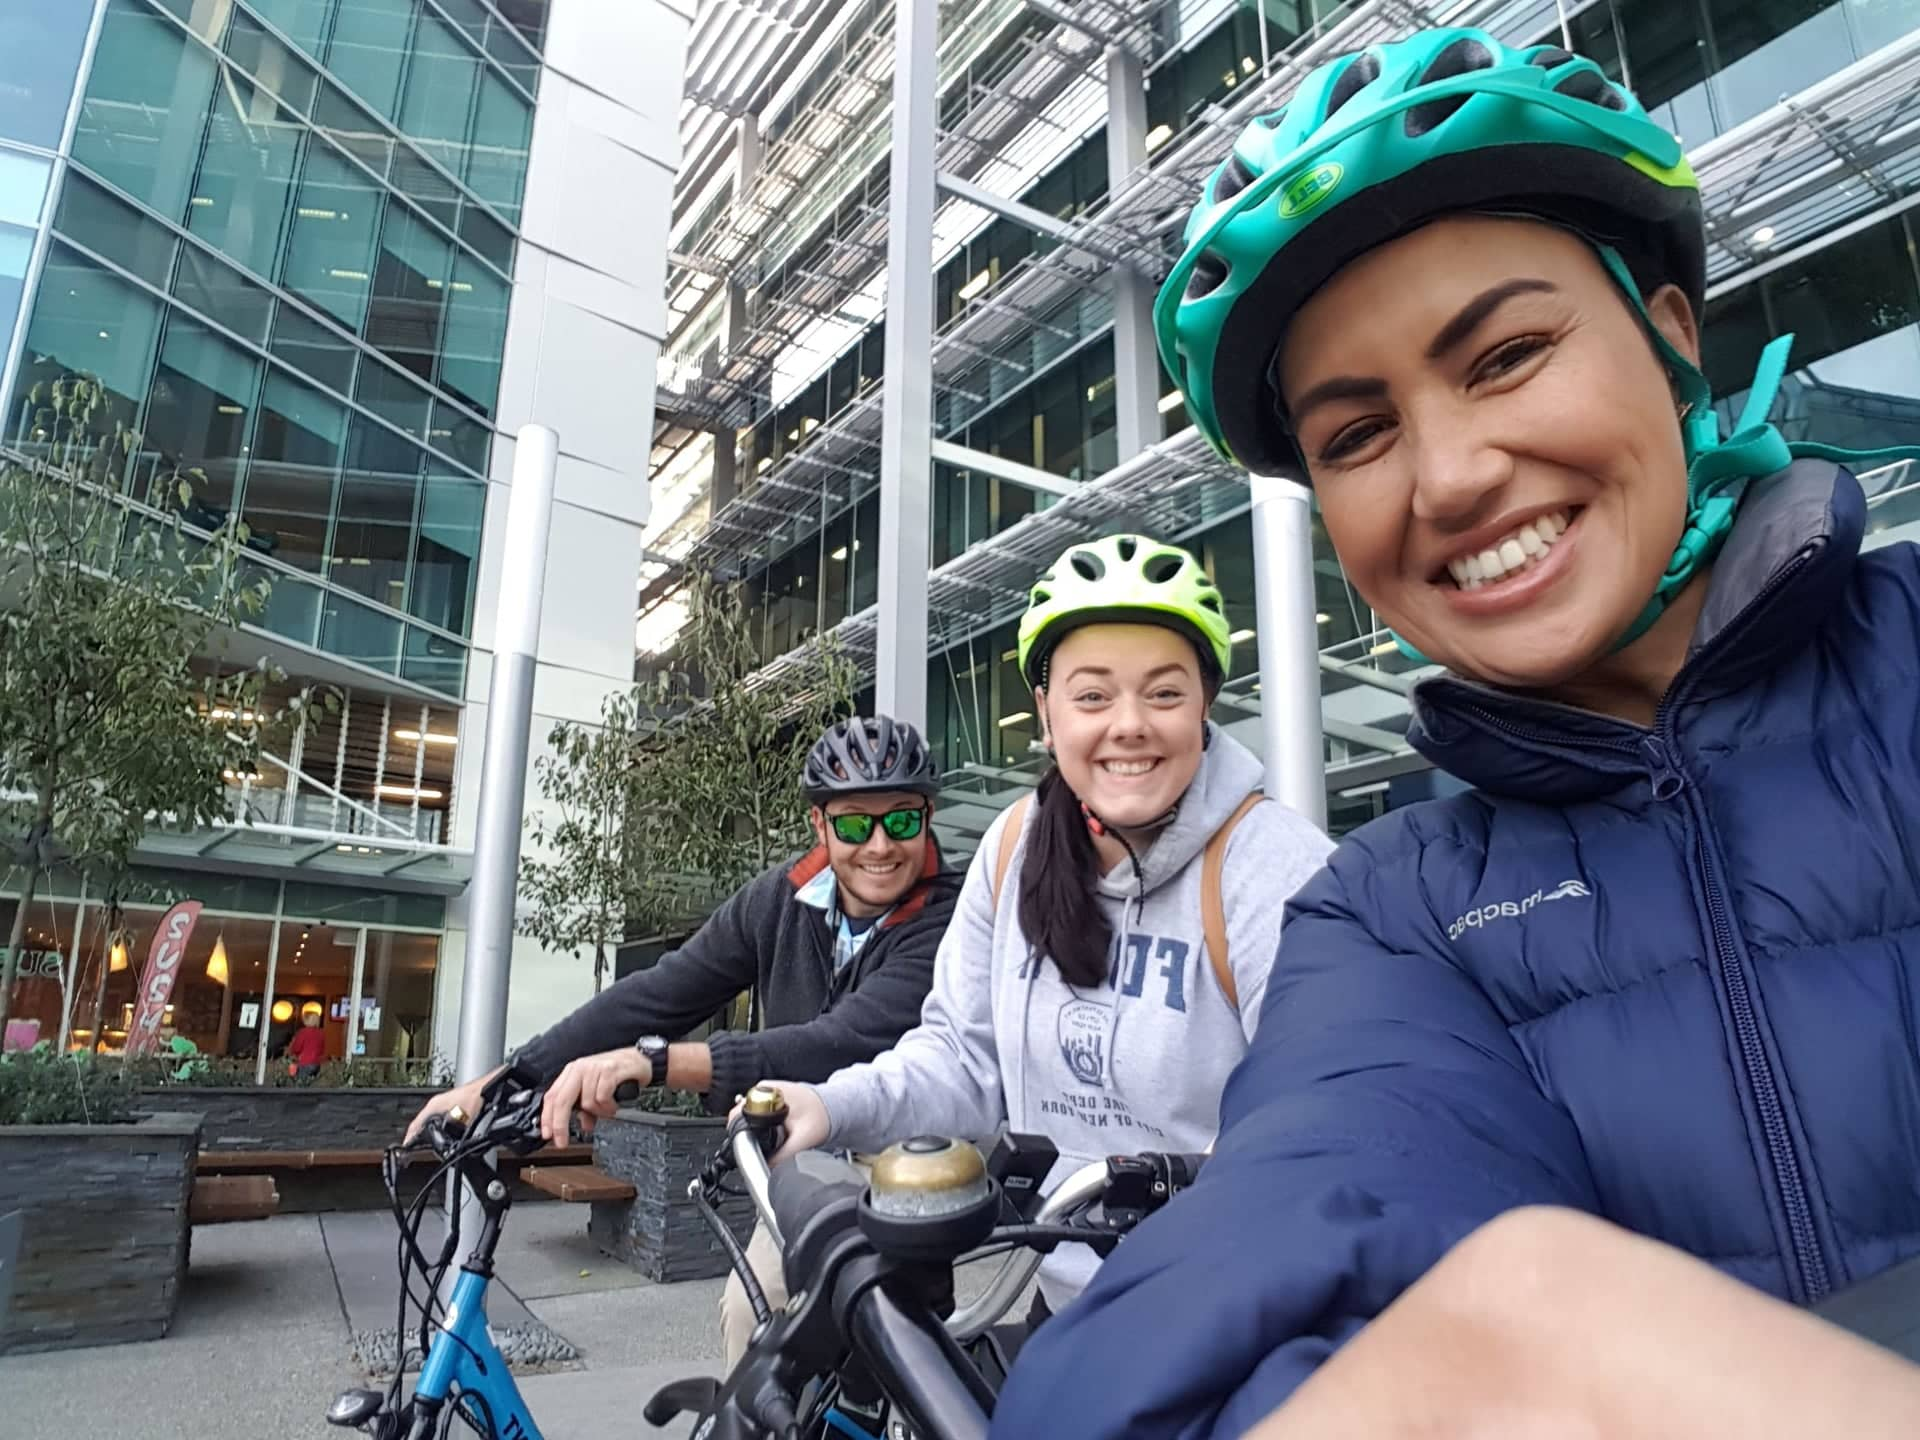 Leehane Stowers (right) and her waterfront placemaking colleagues Paul Nicoll and Charlotte Palmer, cycling through Wynyard Quarter.